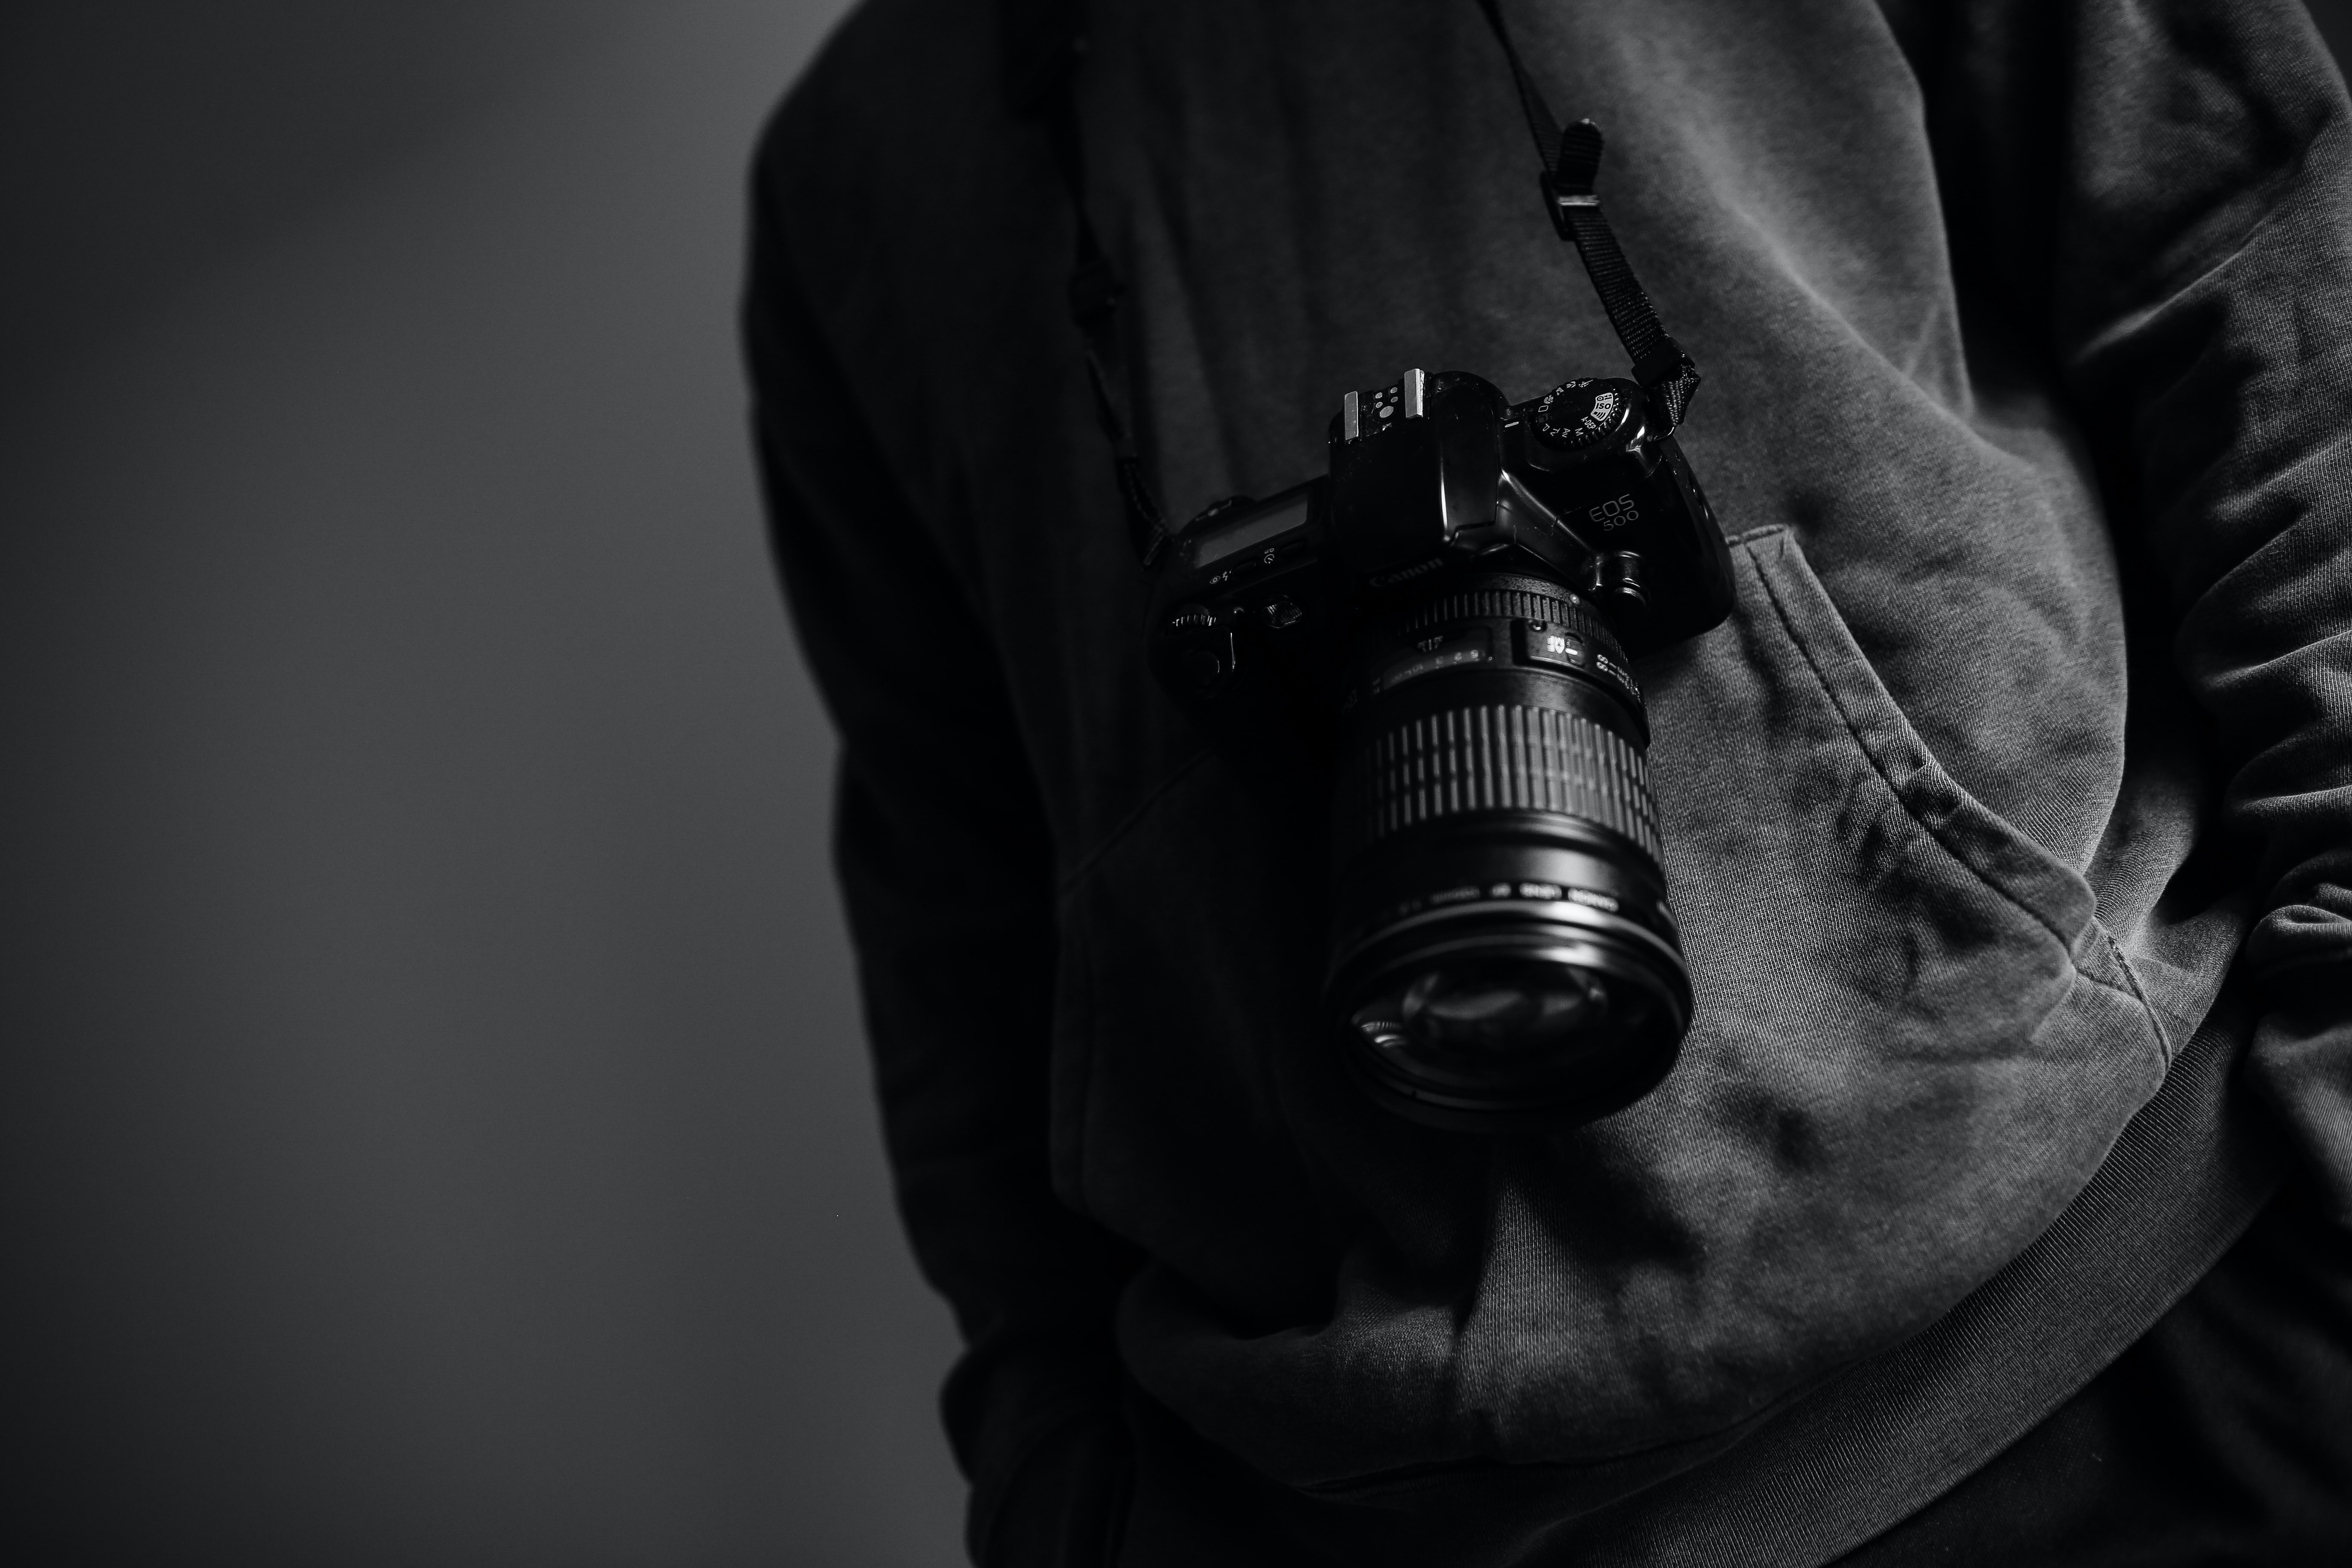 Black and white shot of man's torso with hoody and camera on dark background